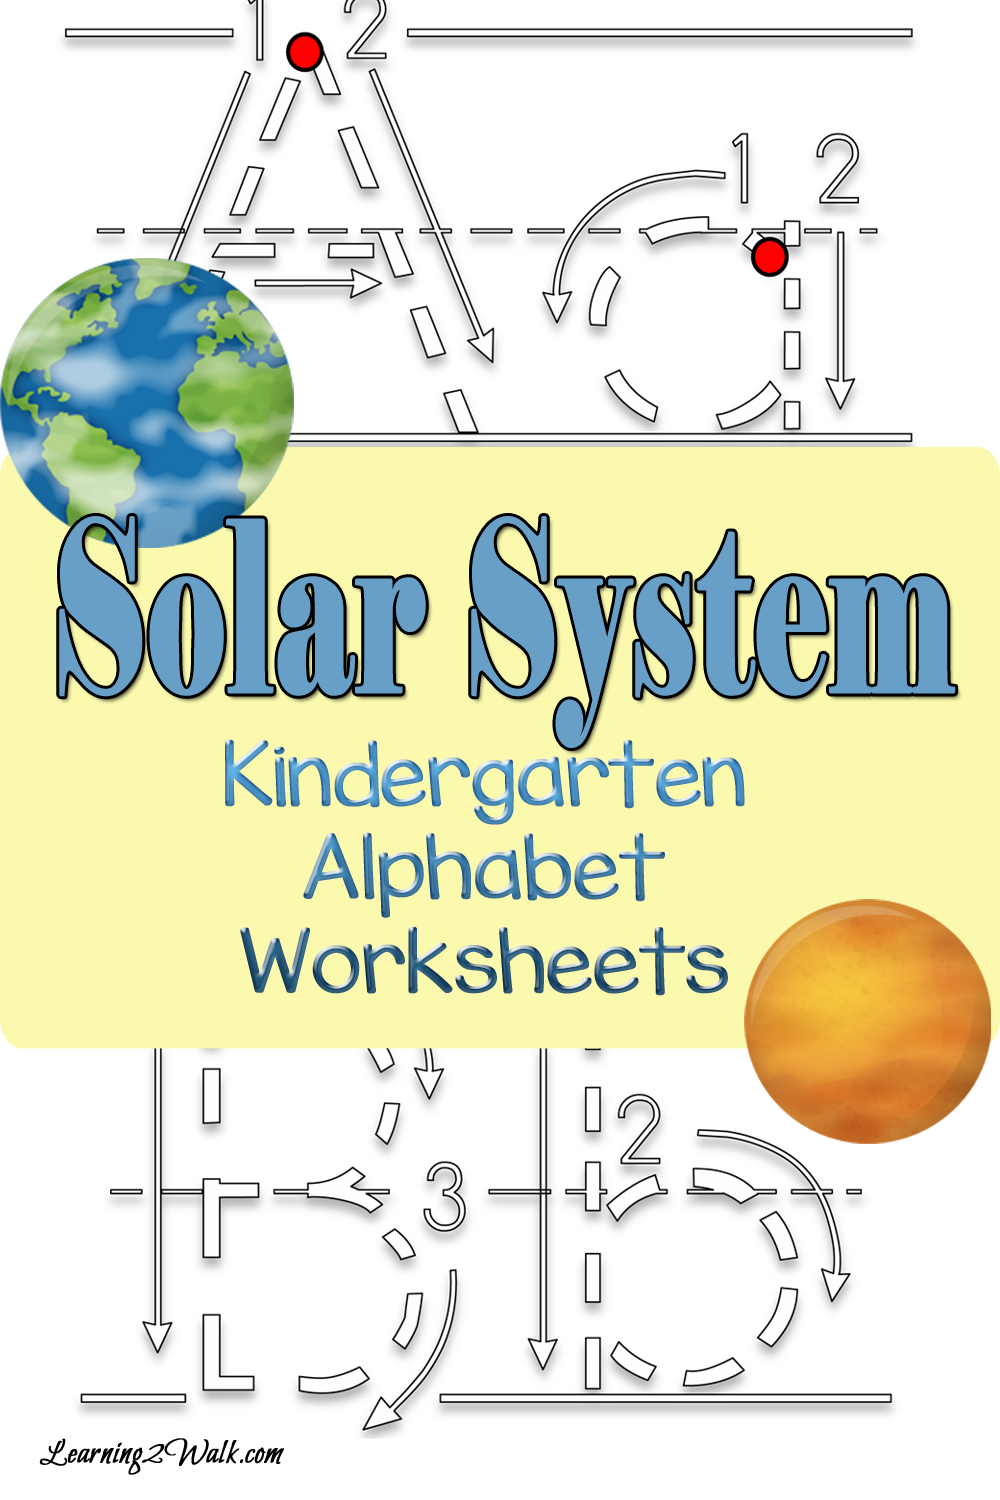 Coloring pages solar system letters - Does The Solar System And Alphabet Worksheets Go Together Of Course They Do Here